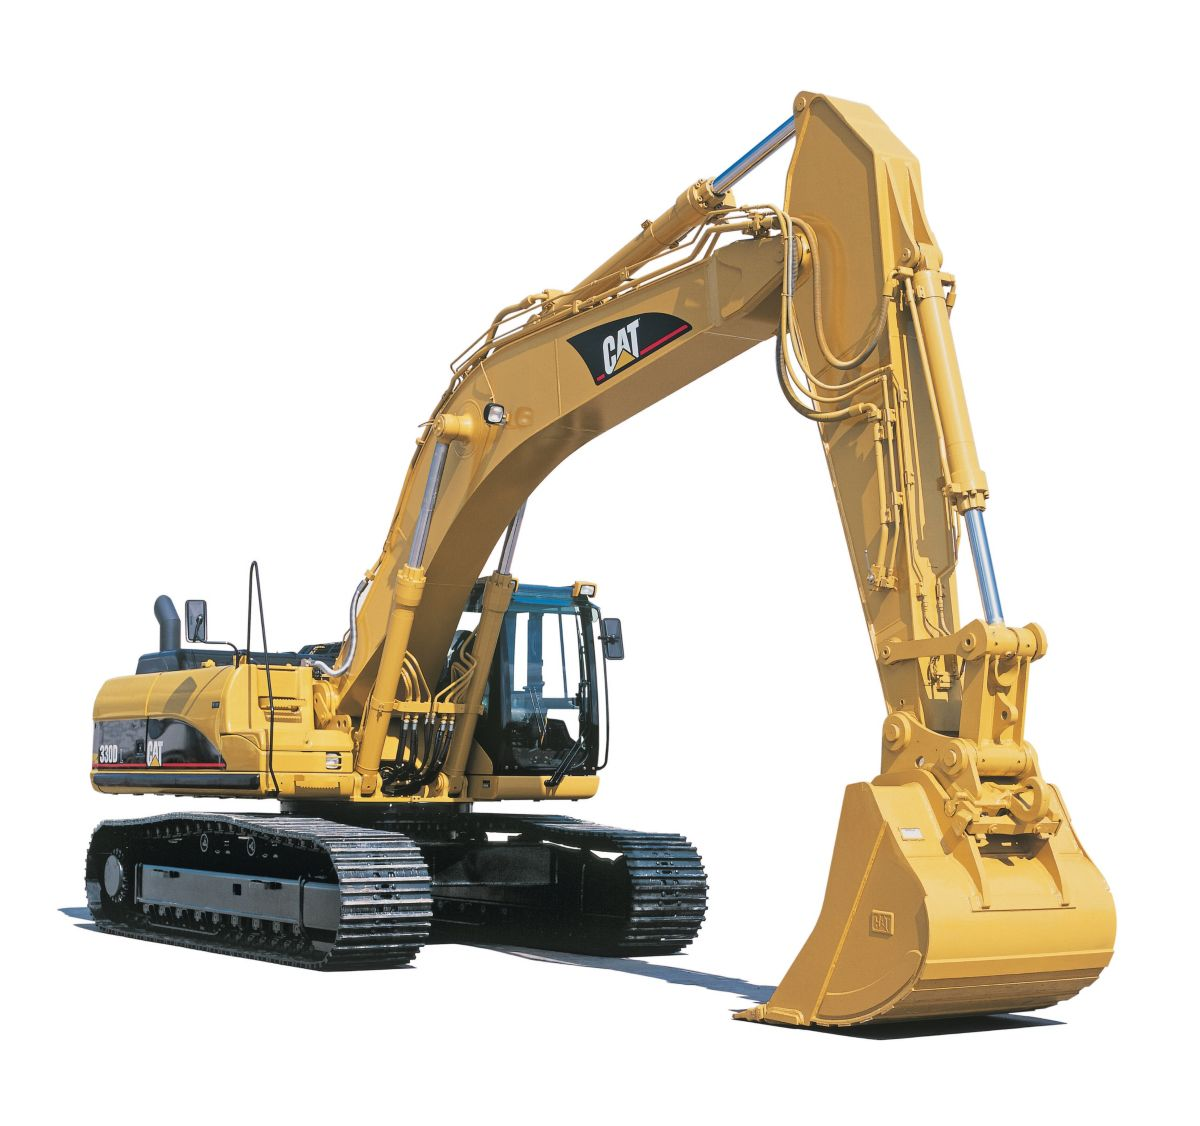 330D UHD - COSA Ultra High Demolition Excavators